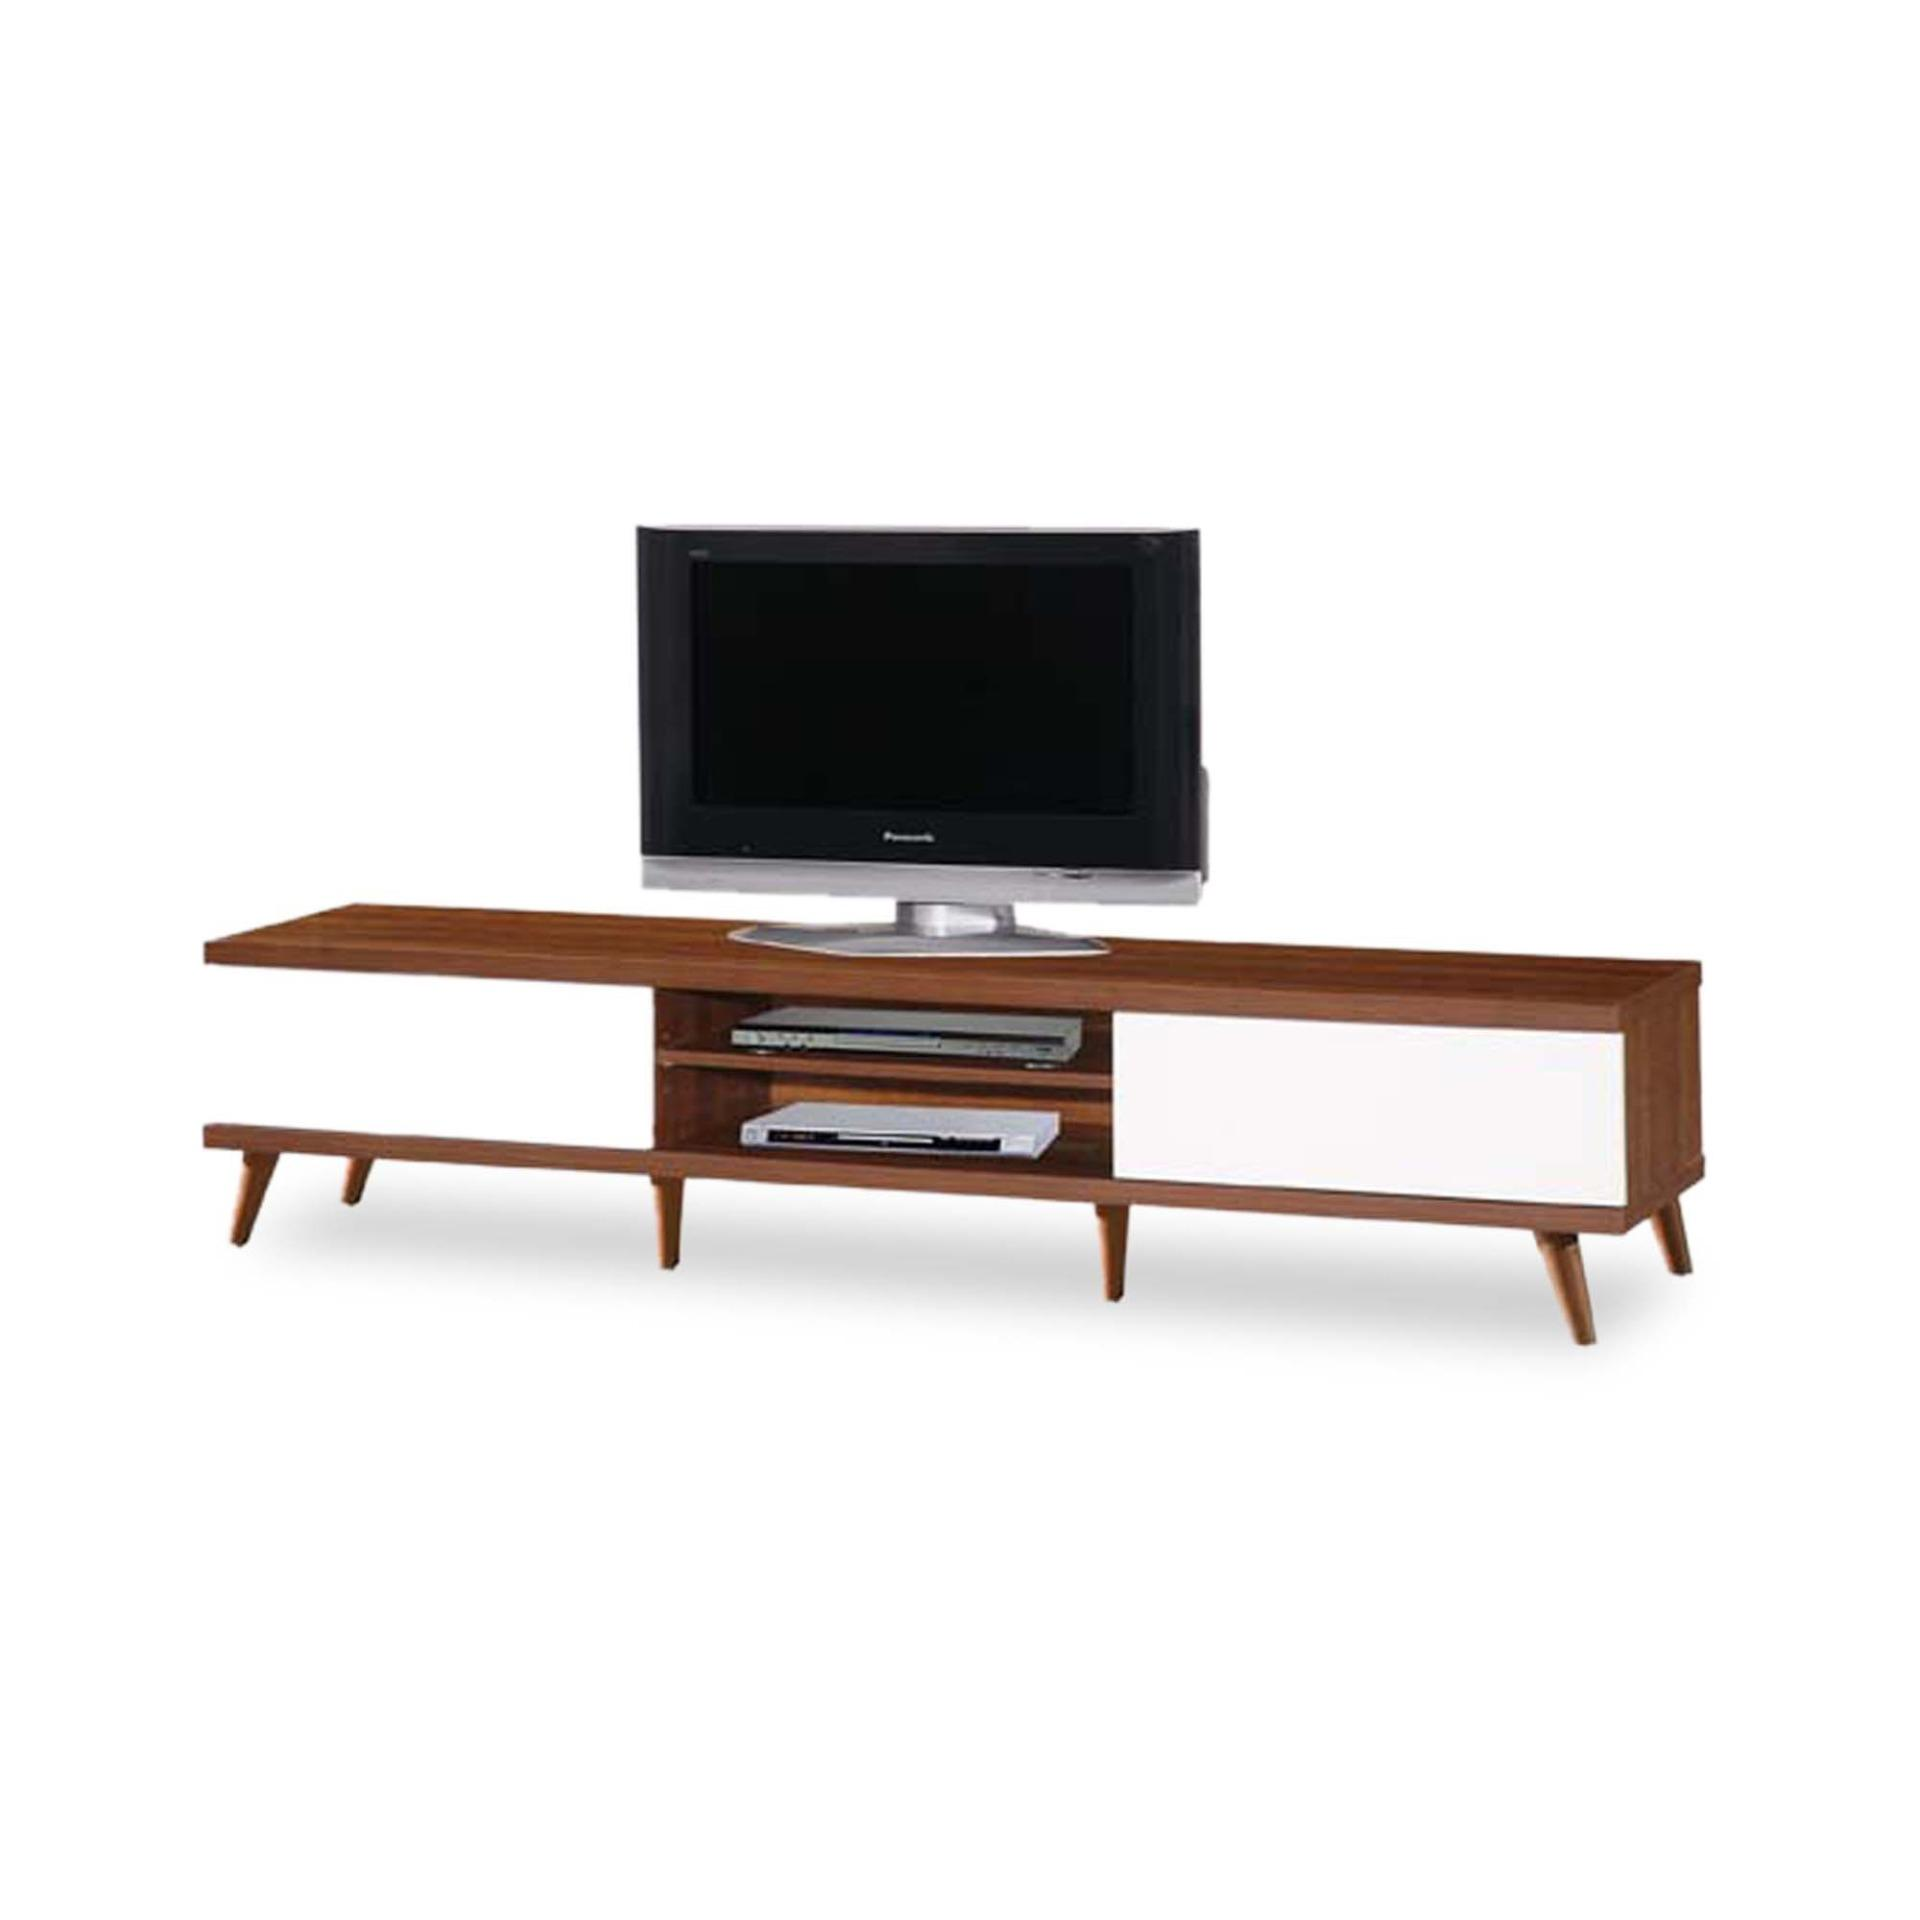 Mehdi TV Cabinet 1.8m (FREE DELIVERY)(FREE ASSEMBLY)